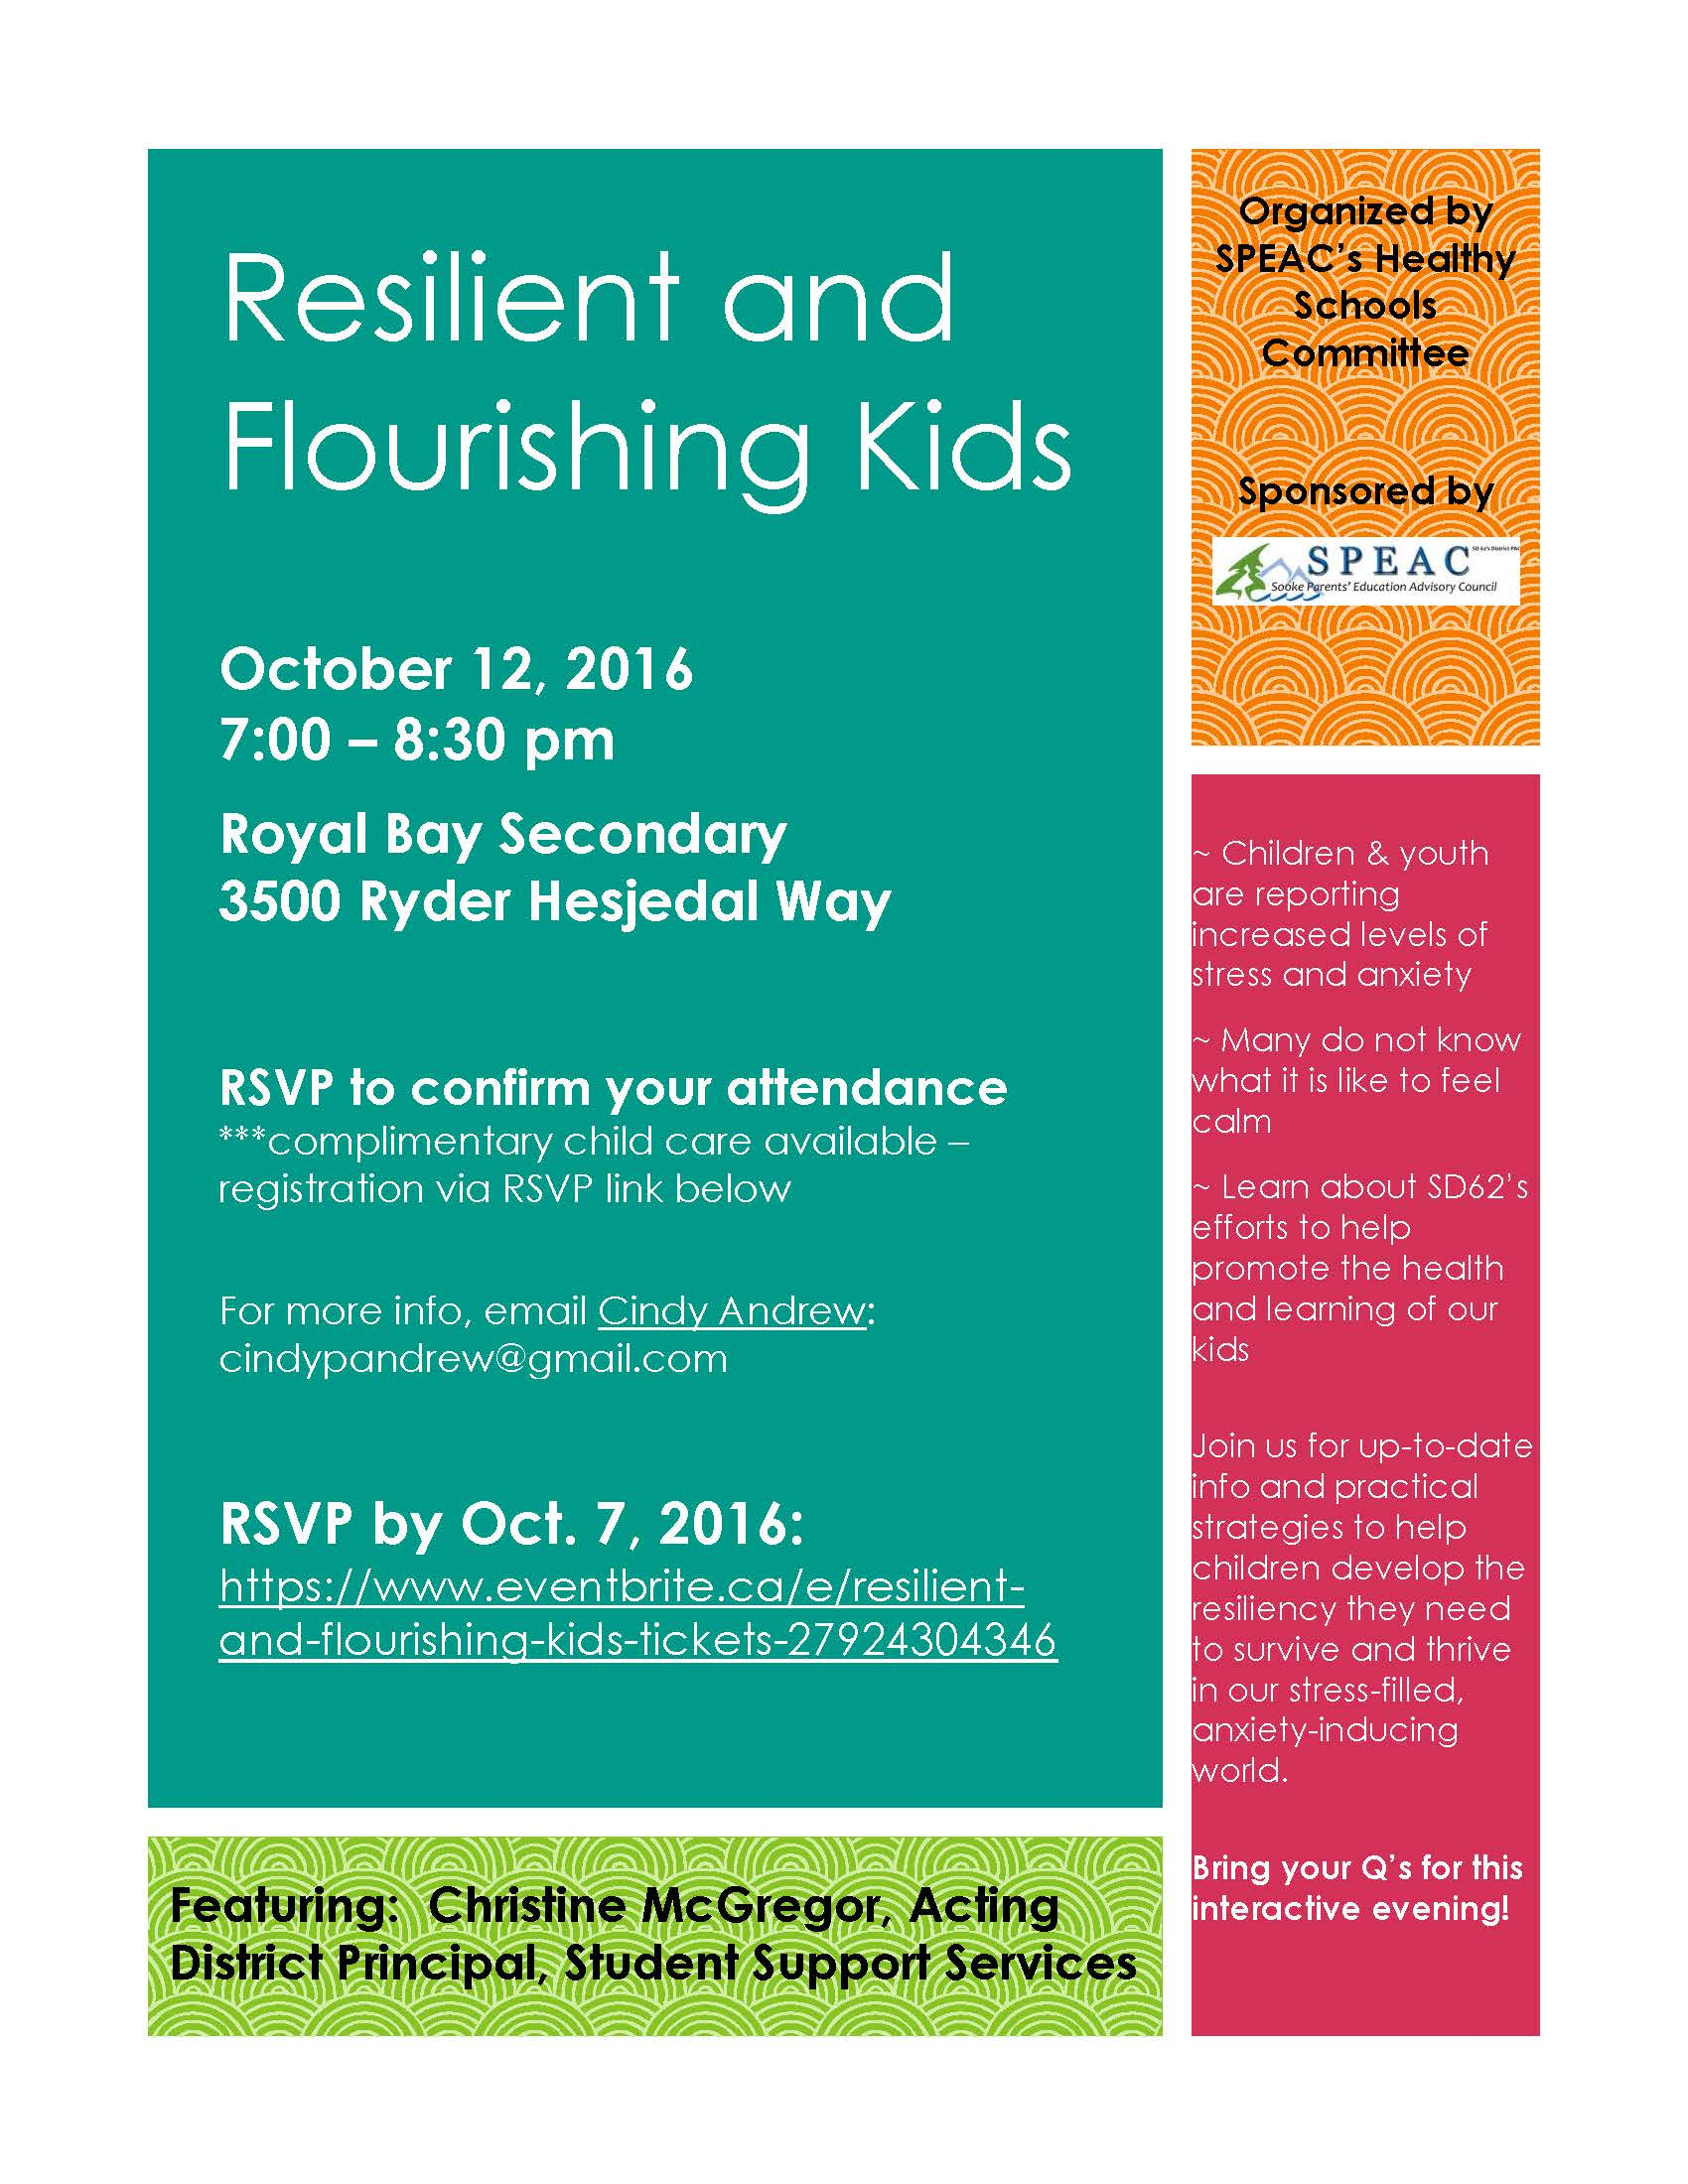 2016-10-12-resilient-and-flourishing-kids